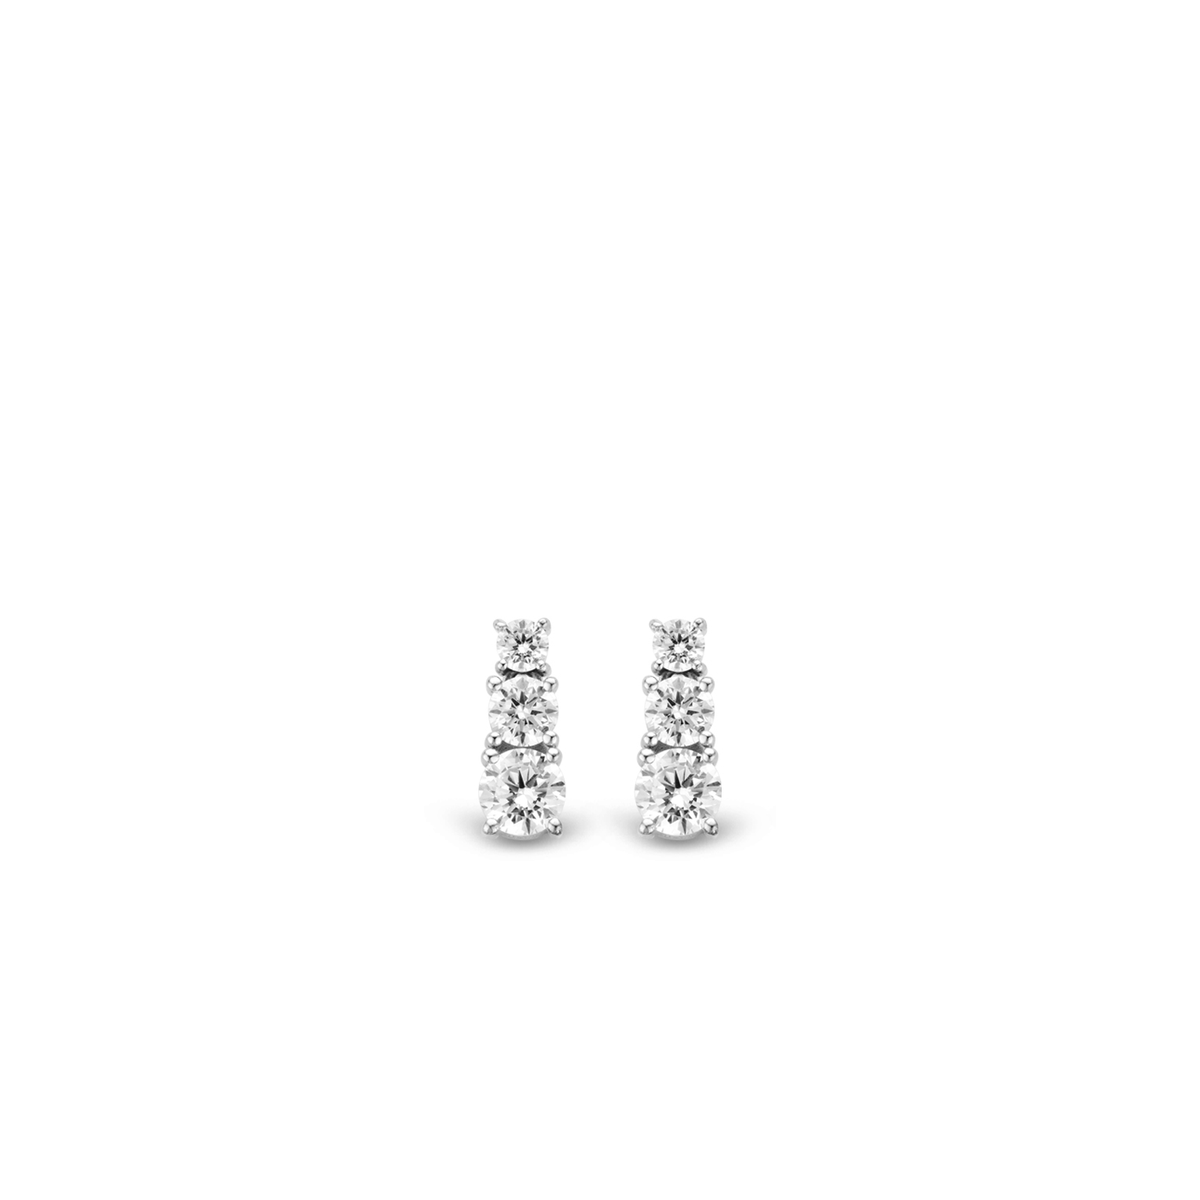 TI SENTO - Milano Earrings 7725ZI